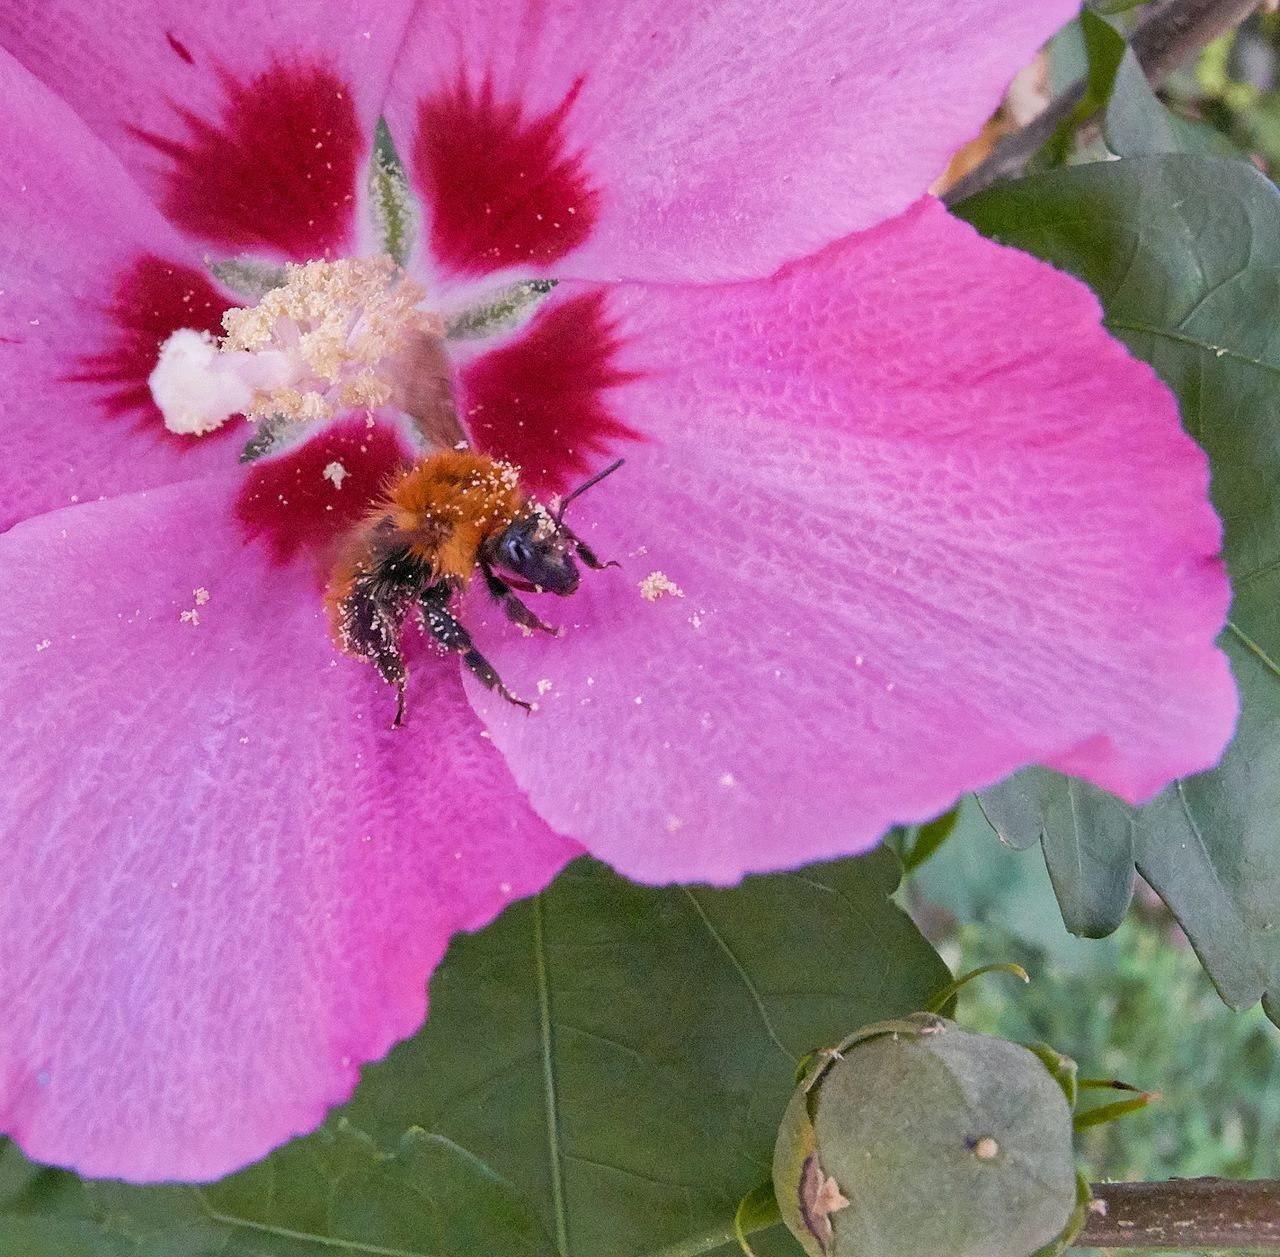 flower, flowering plant, petal, beauty in nature, pink color, plant, invertebrate, vulnerability, insect, animal themes, one animal, fragility, animals in the wild, freshness, close-up, animal wildlife, animal, flower head, growth, bee, no people, pollination, pollen, outdoors, bumblebee